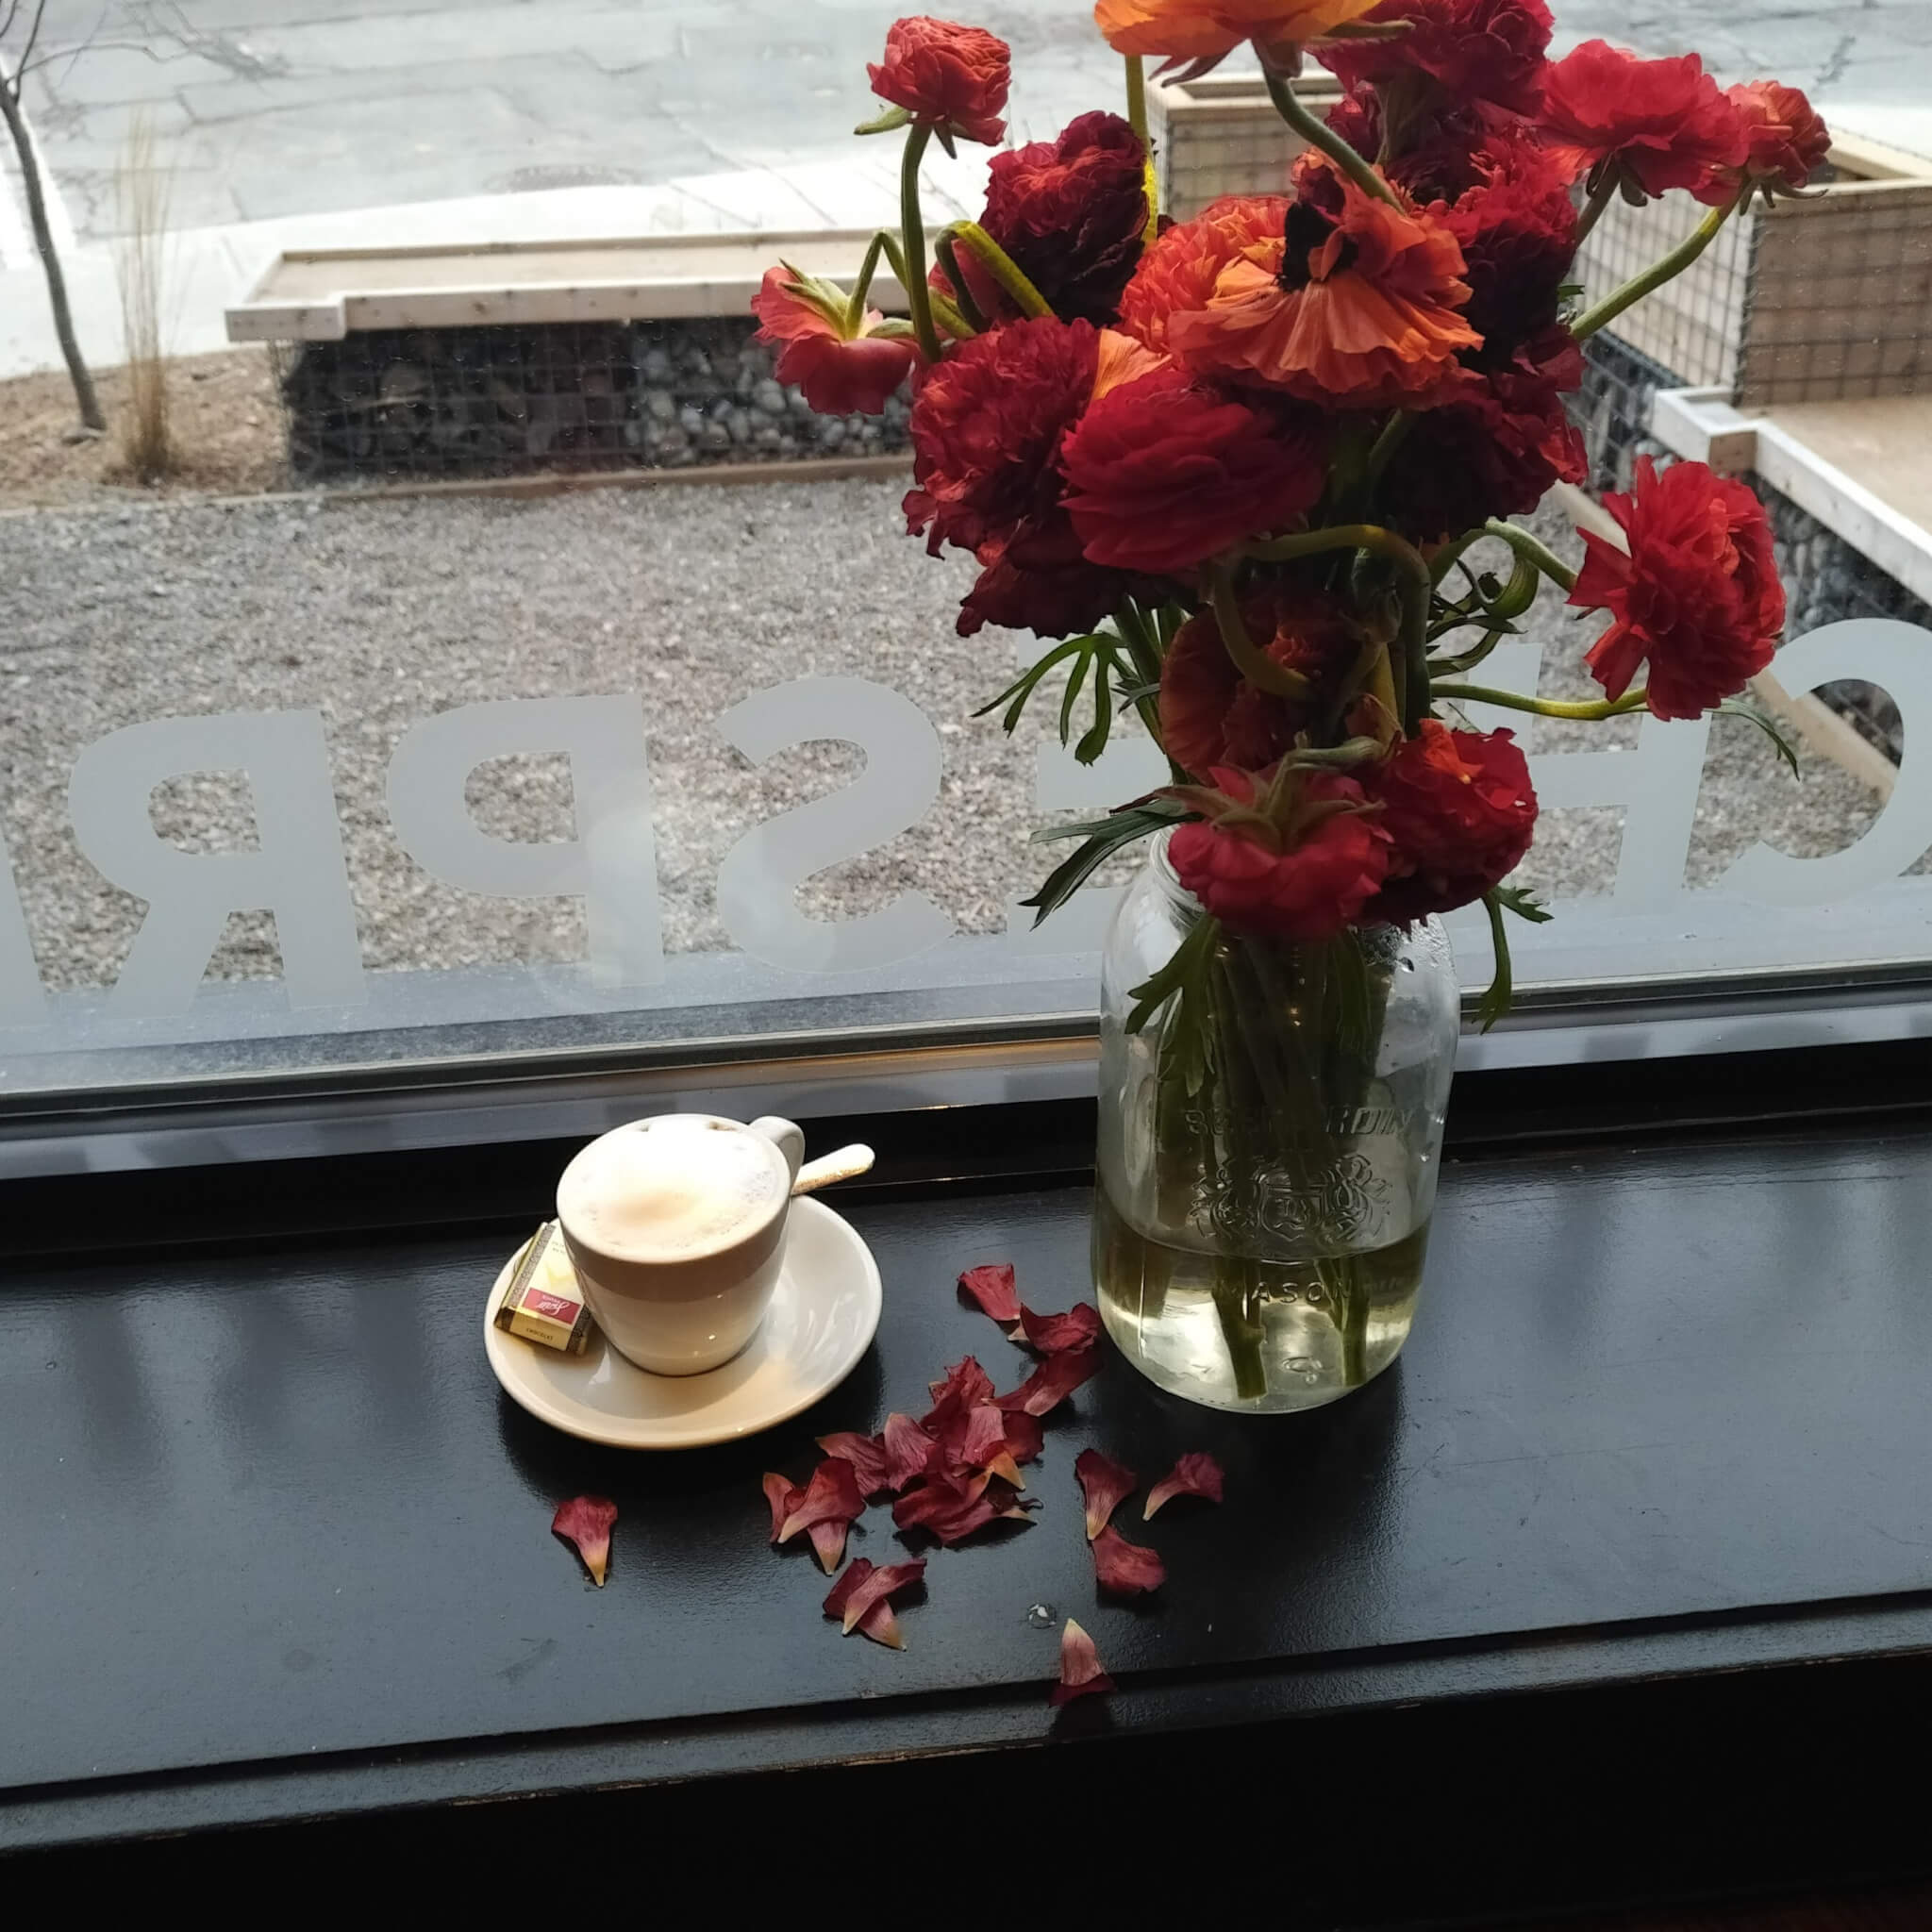 a single macchiato in a white ceramic espresso cup and saucer. A bouquet of red flowers is beside and spilling petals onto the windowsill.